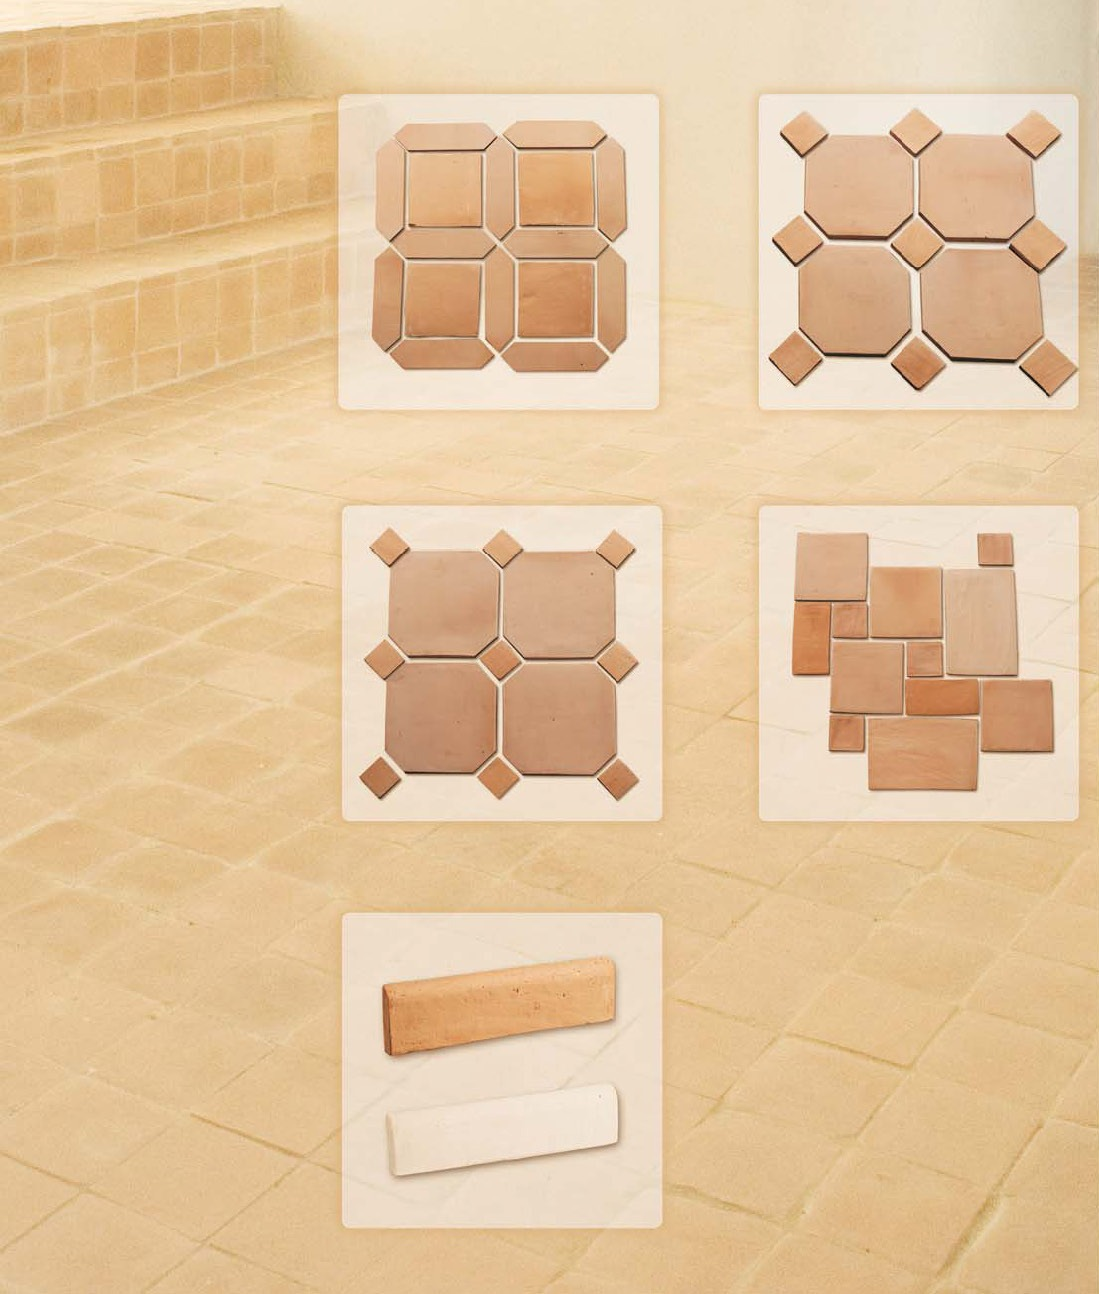 Pak Clay Flooring Tiles Designs Ideas, Pictures, Remodel - Home & Garden